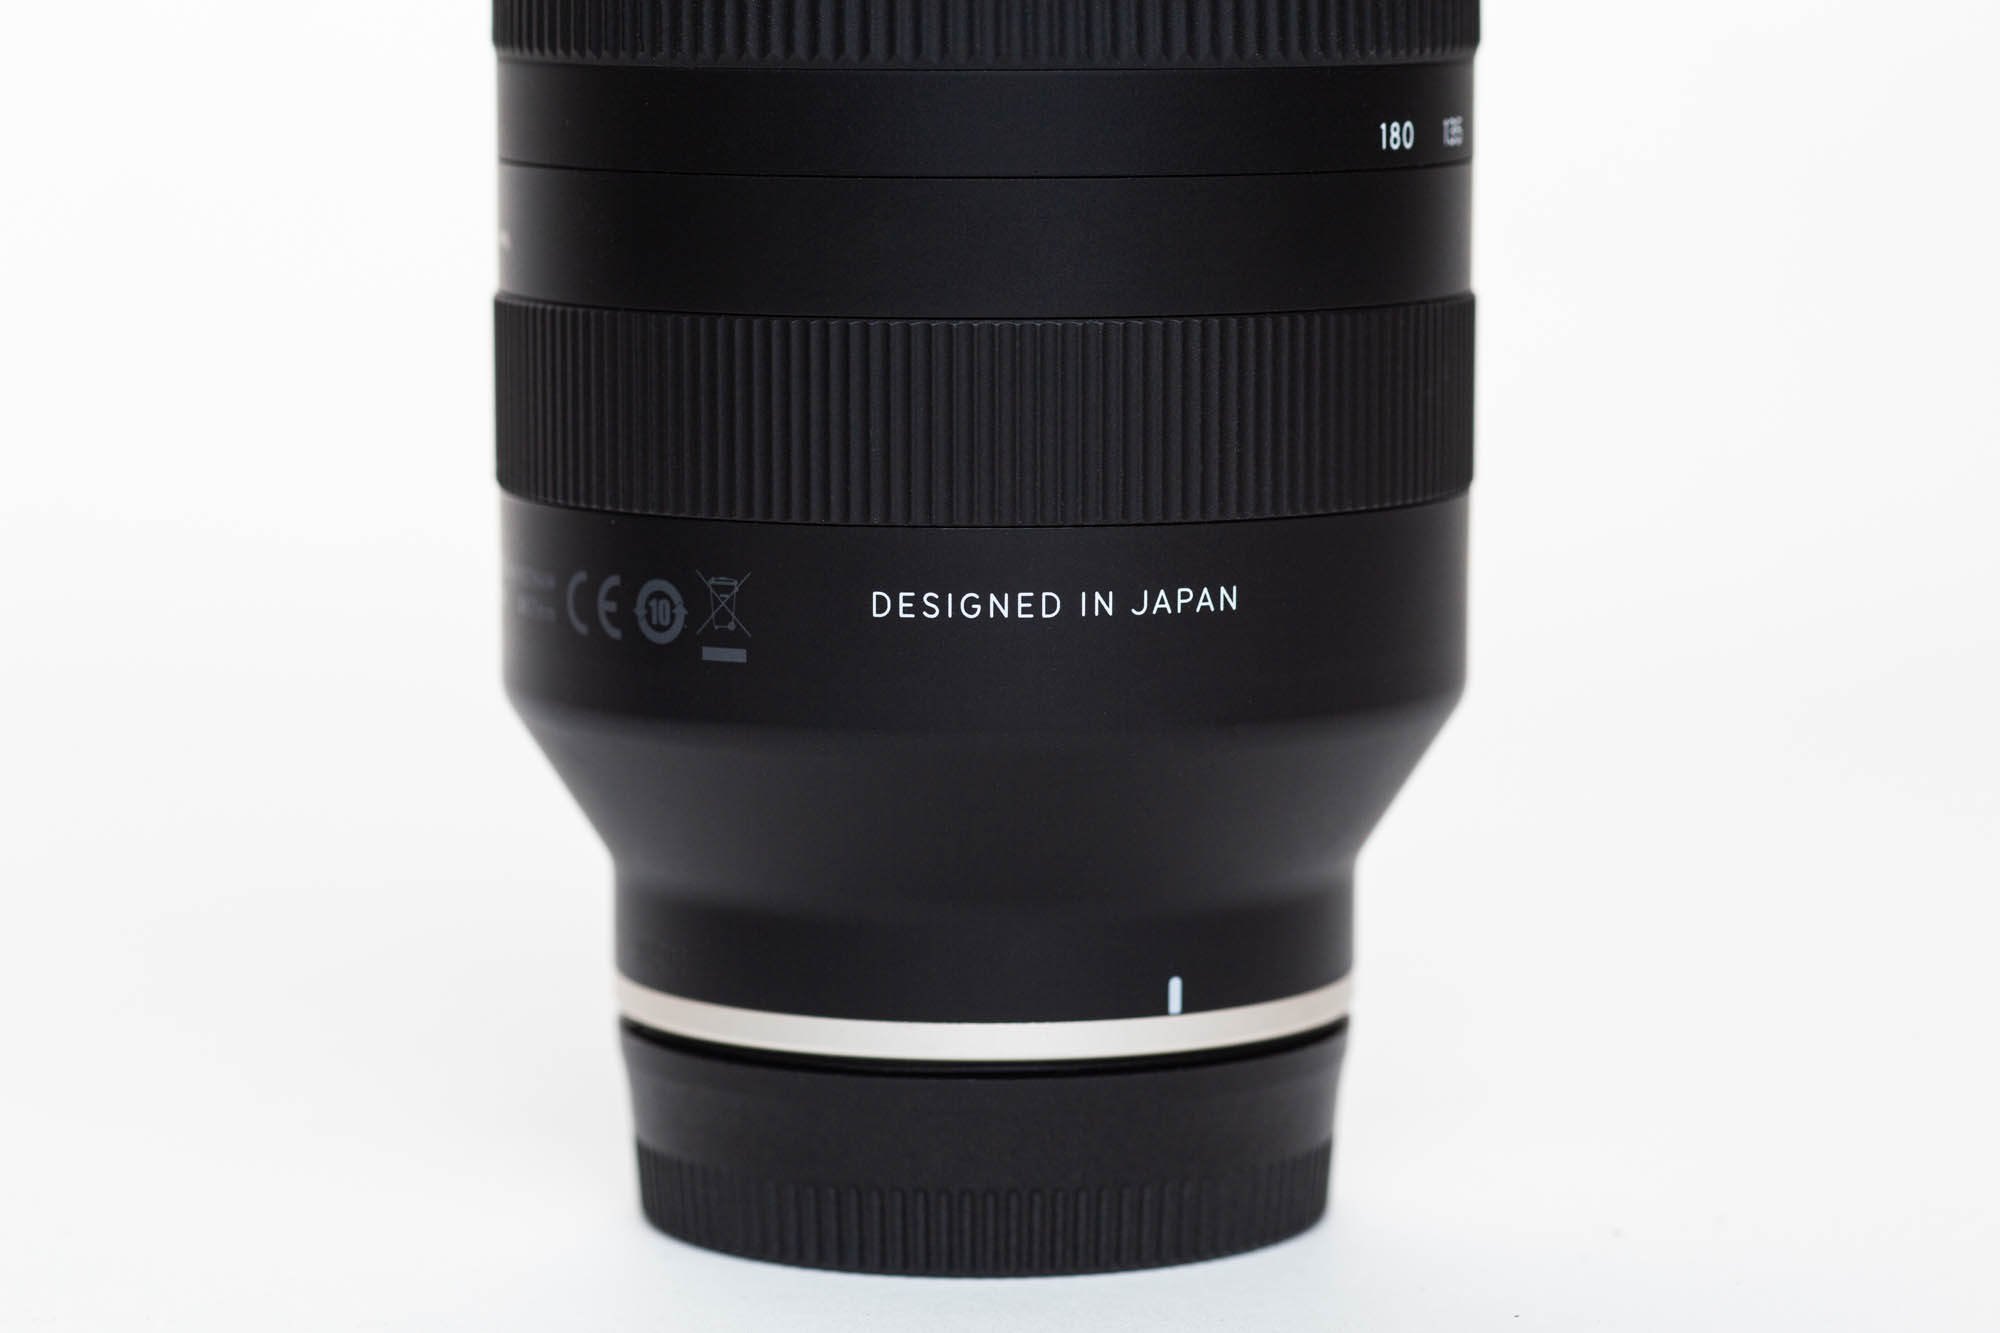 Tamron 70-180mm f/2.8 for Sony review